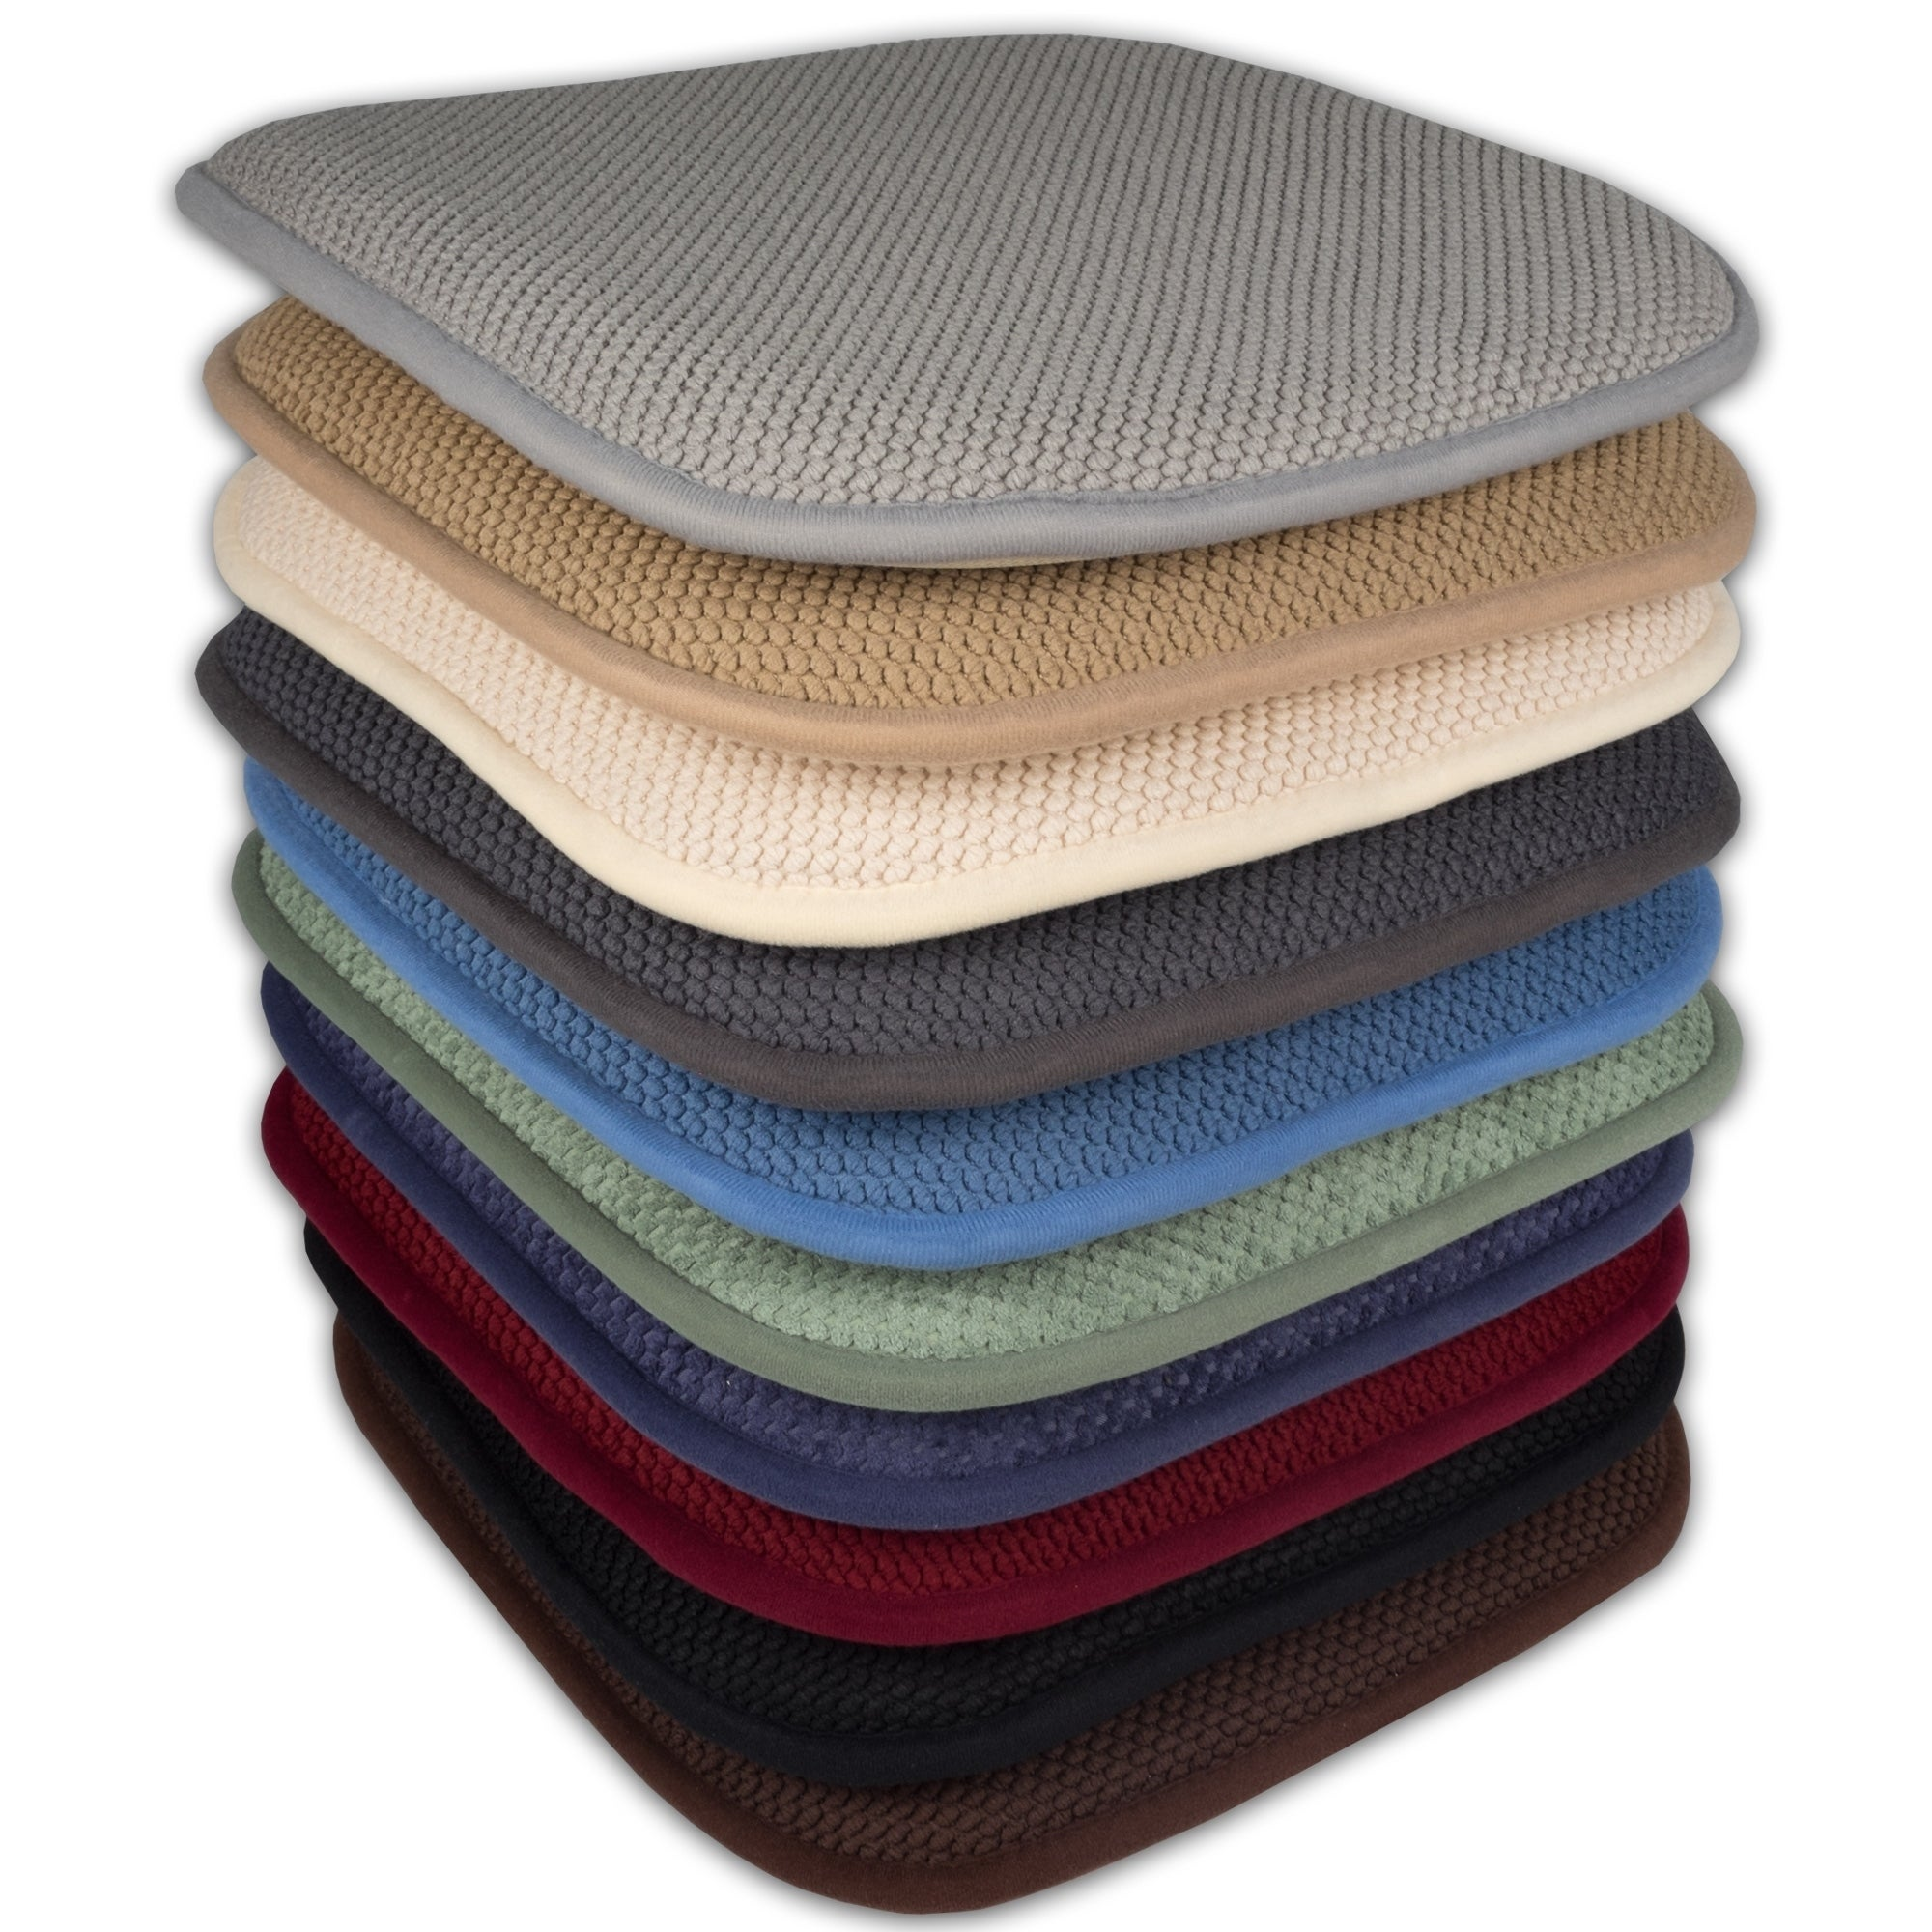 Merveilleux 16x16 Memory Foam Chair Pad/Seat Cushion With Non Slip Backing (2 Or